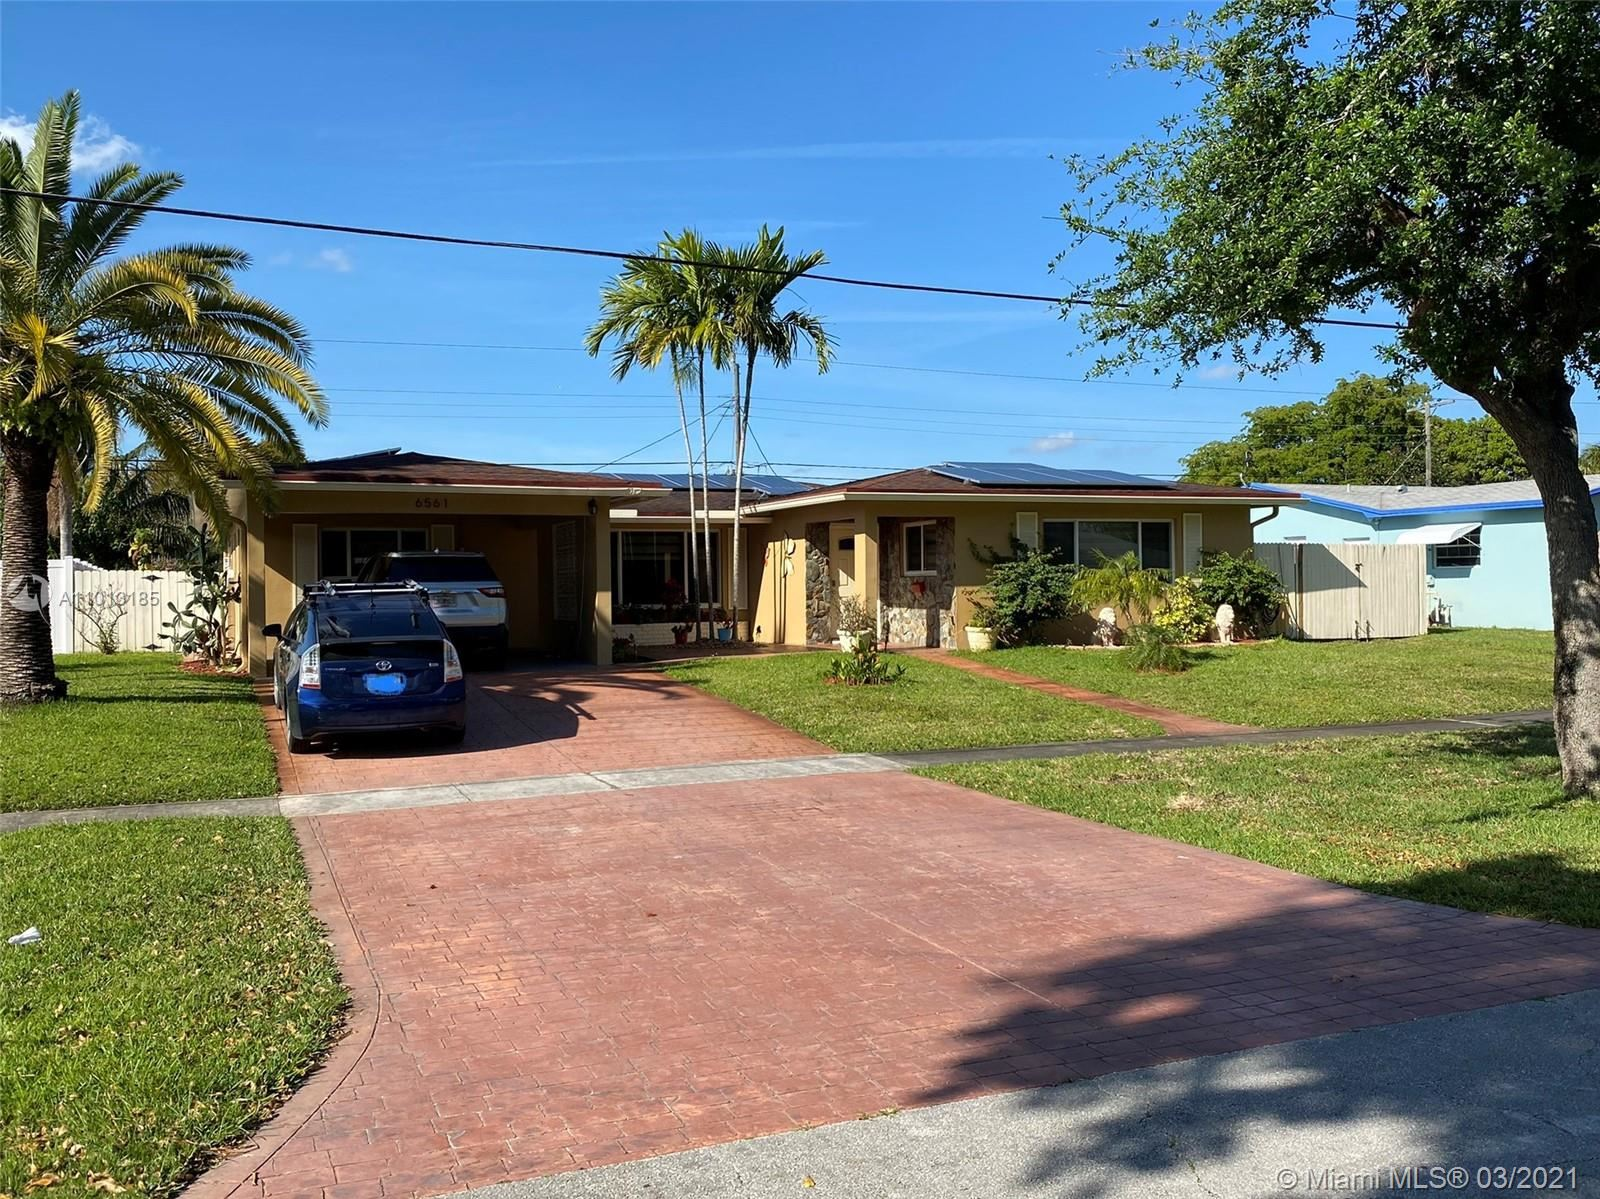 6561 SW 9th St, Pembroke Pines, FL 33023 - #: A11013185